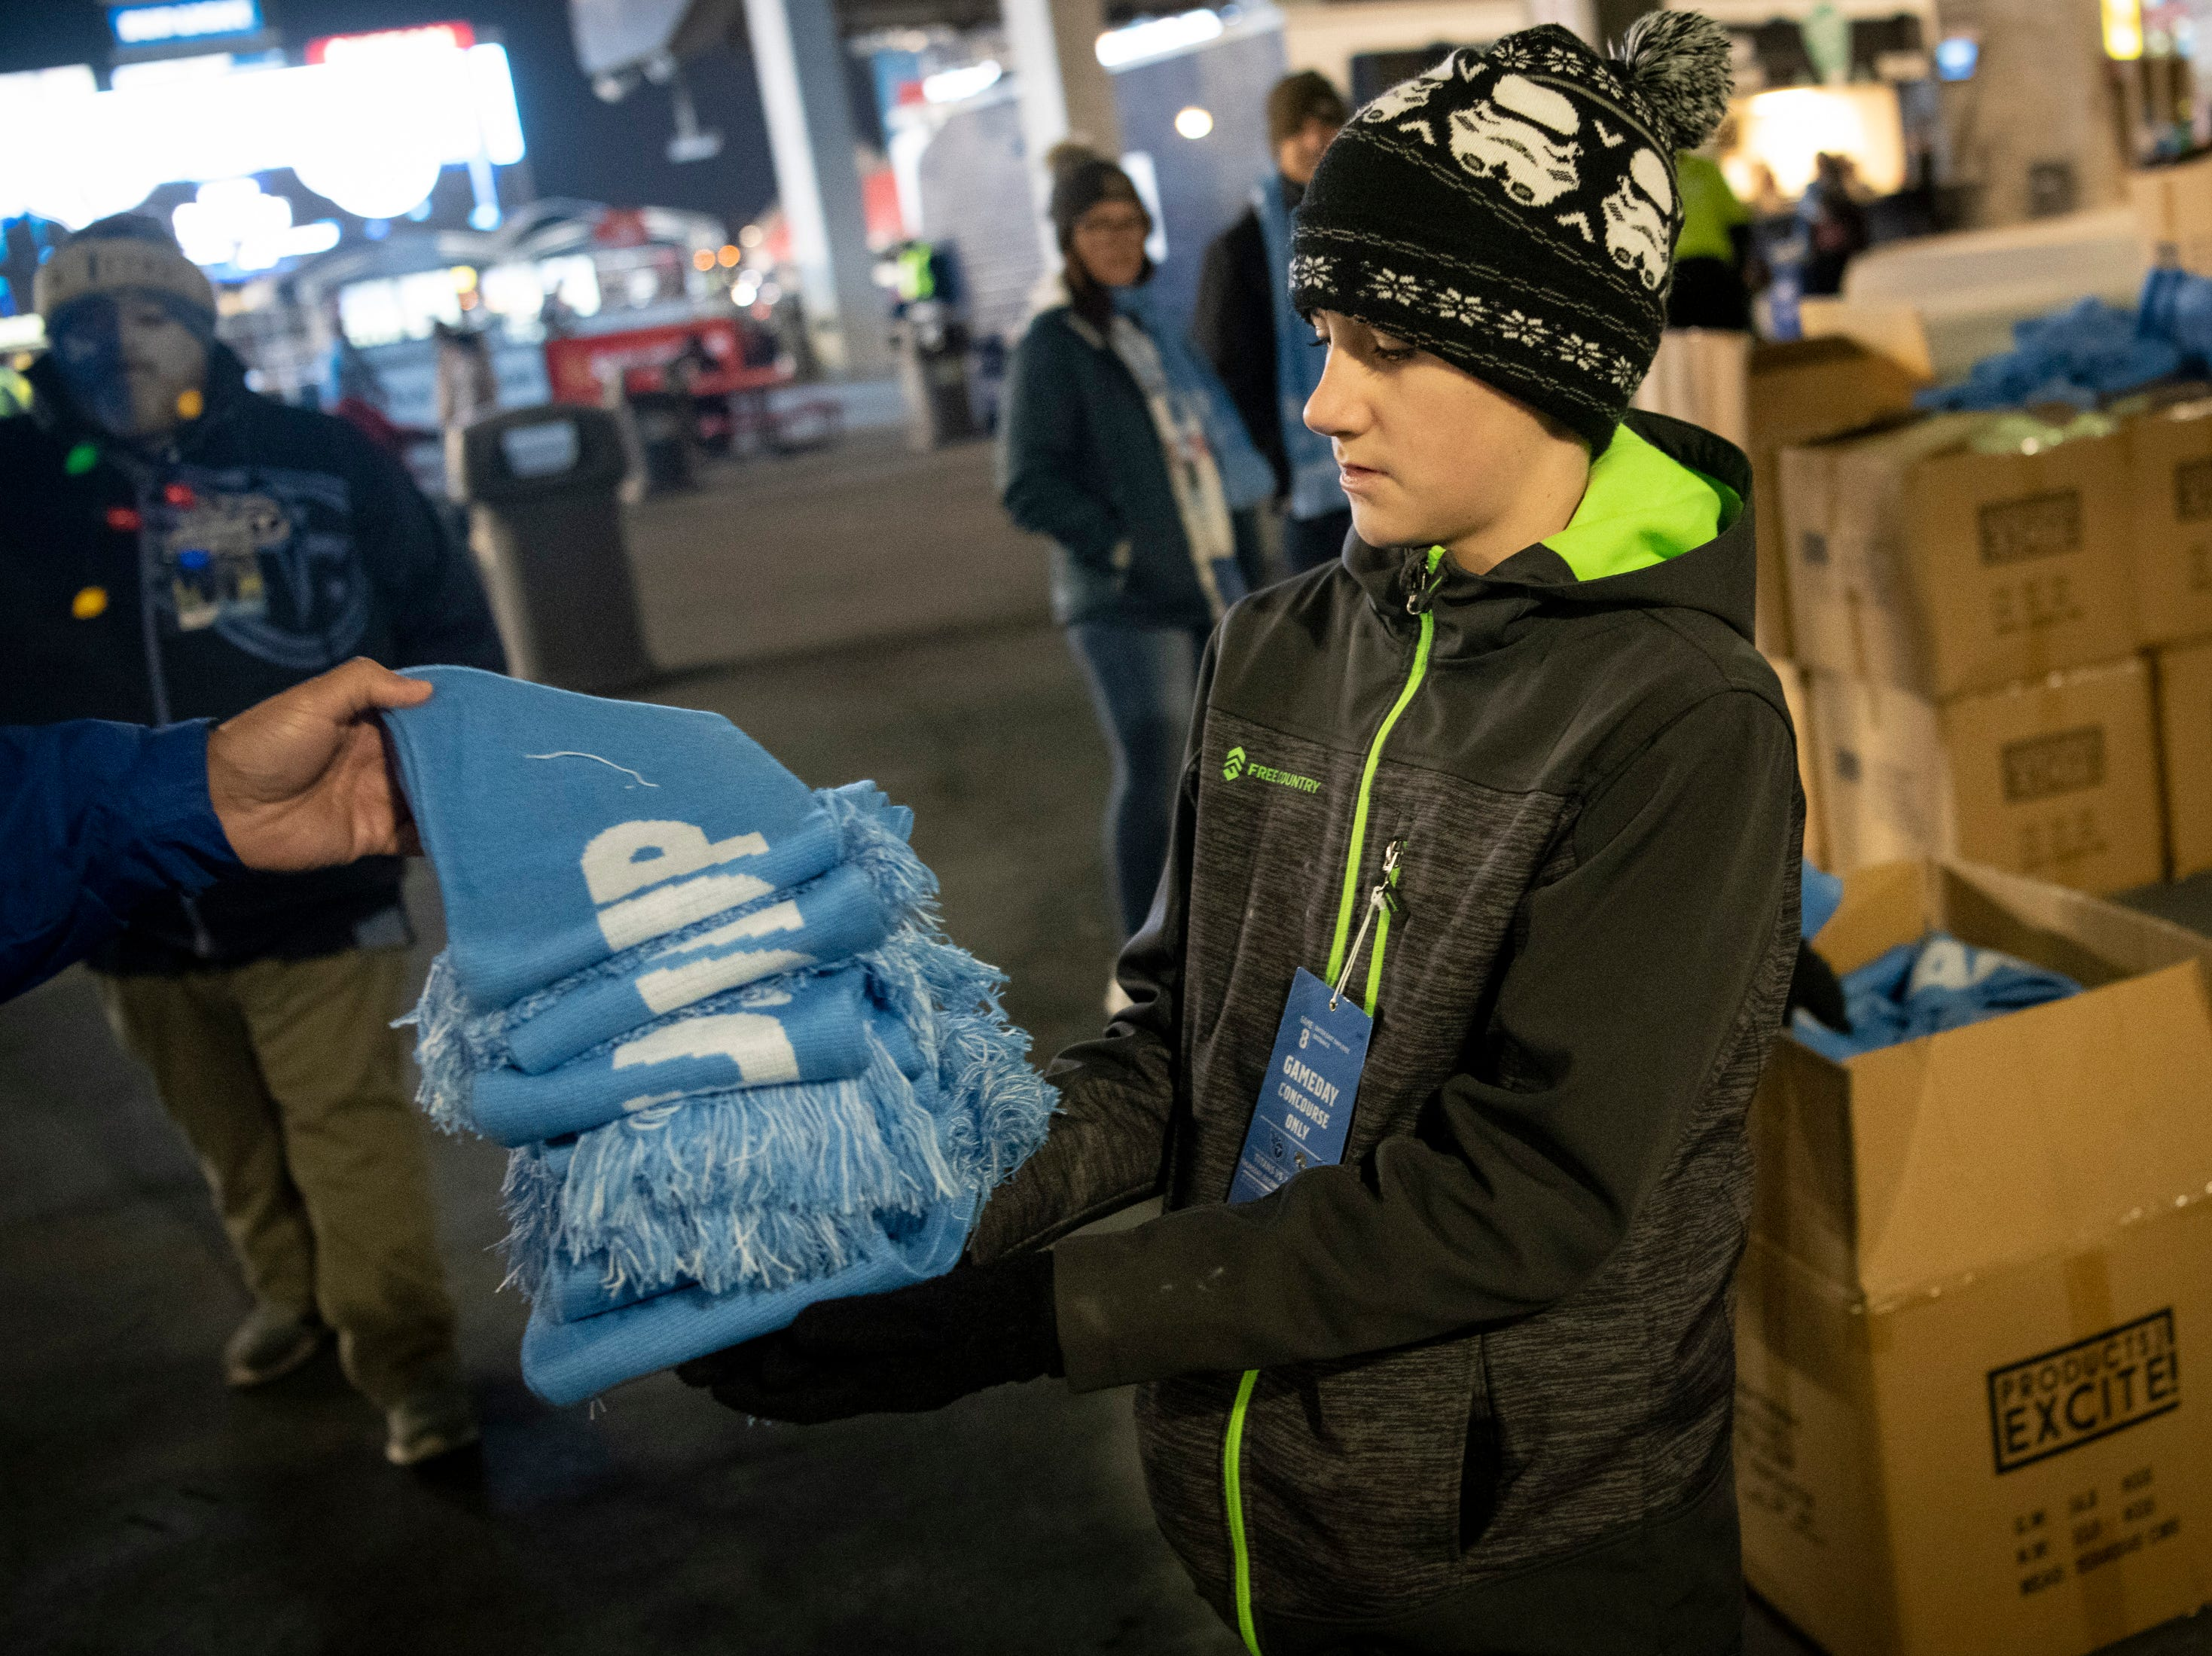 Wesley Gransmaison, 11, hands out scarfs to fans before the game between the Tennessee Titans and the Jacksonville Jaguars at Nissan Stadium in Nashville, Tenn., Thursday, Dec. 6, 2018.